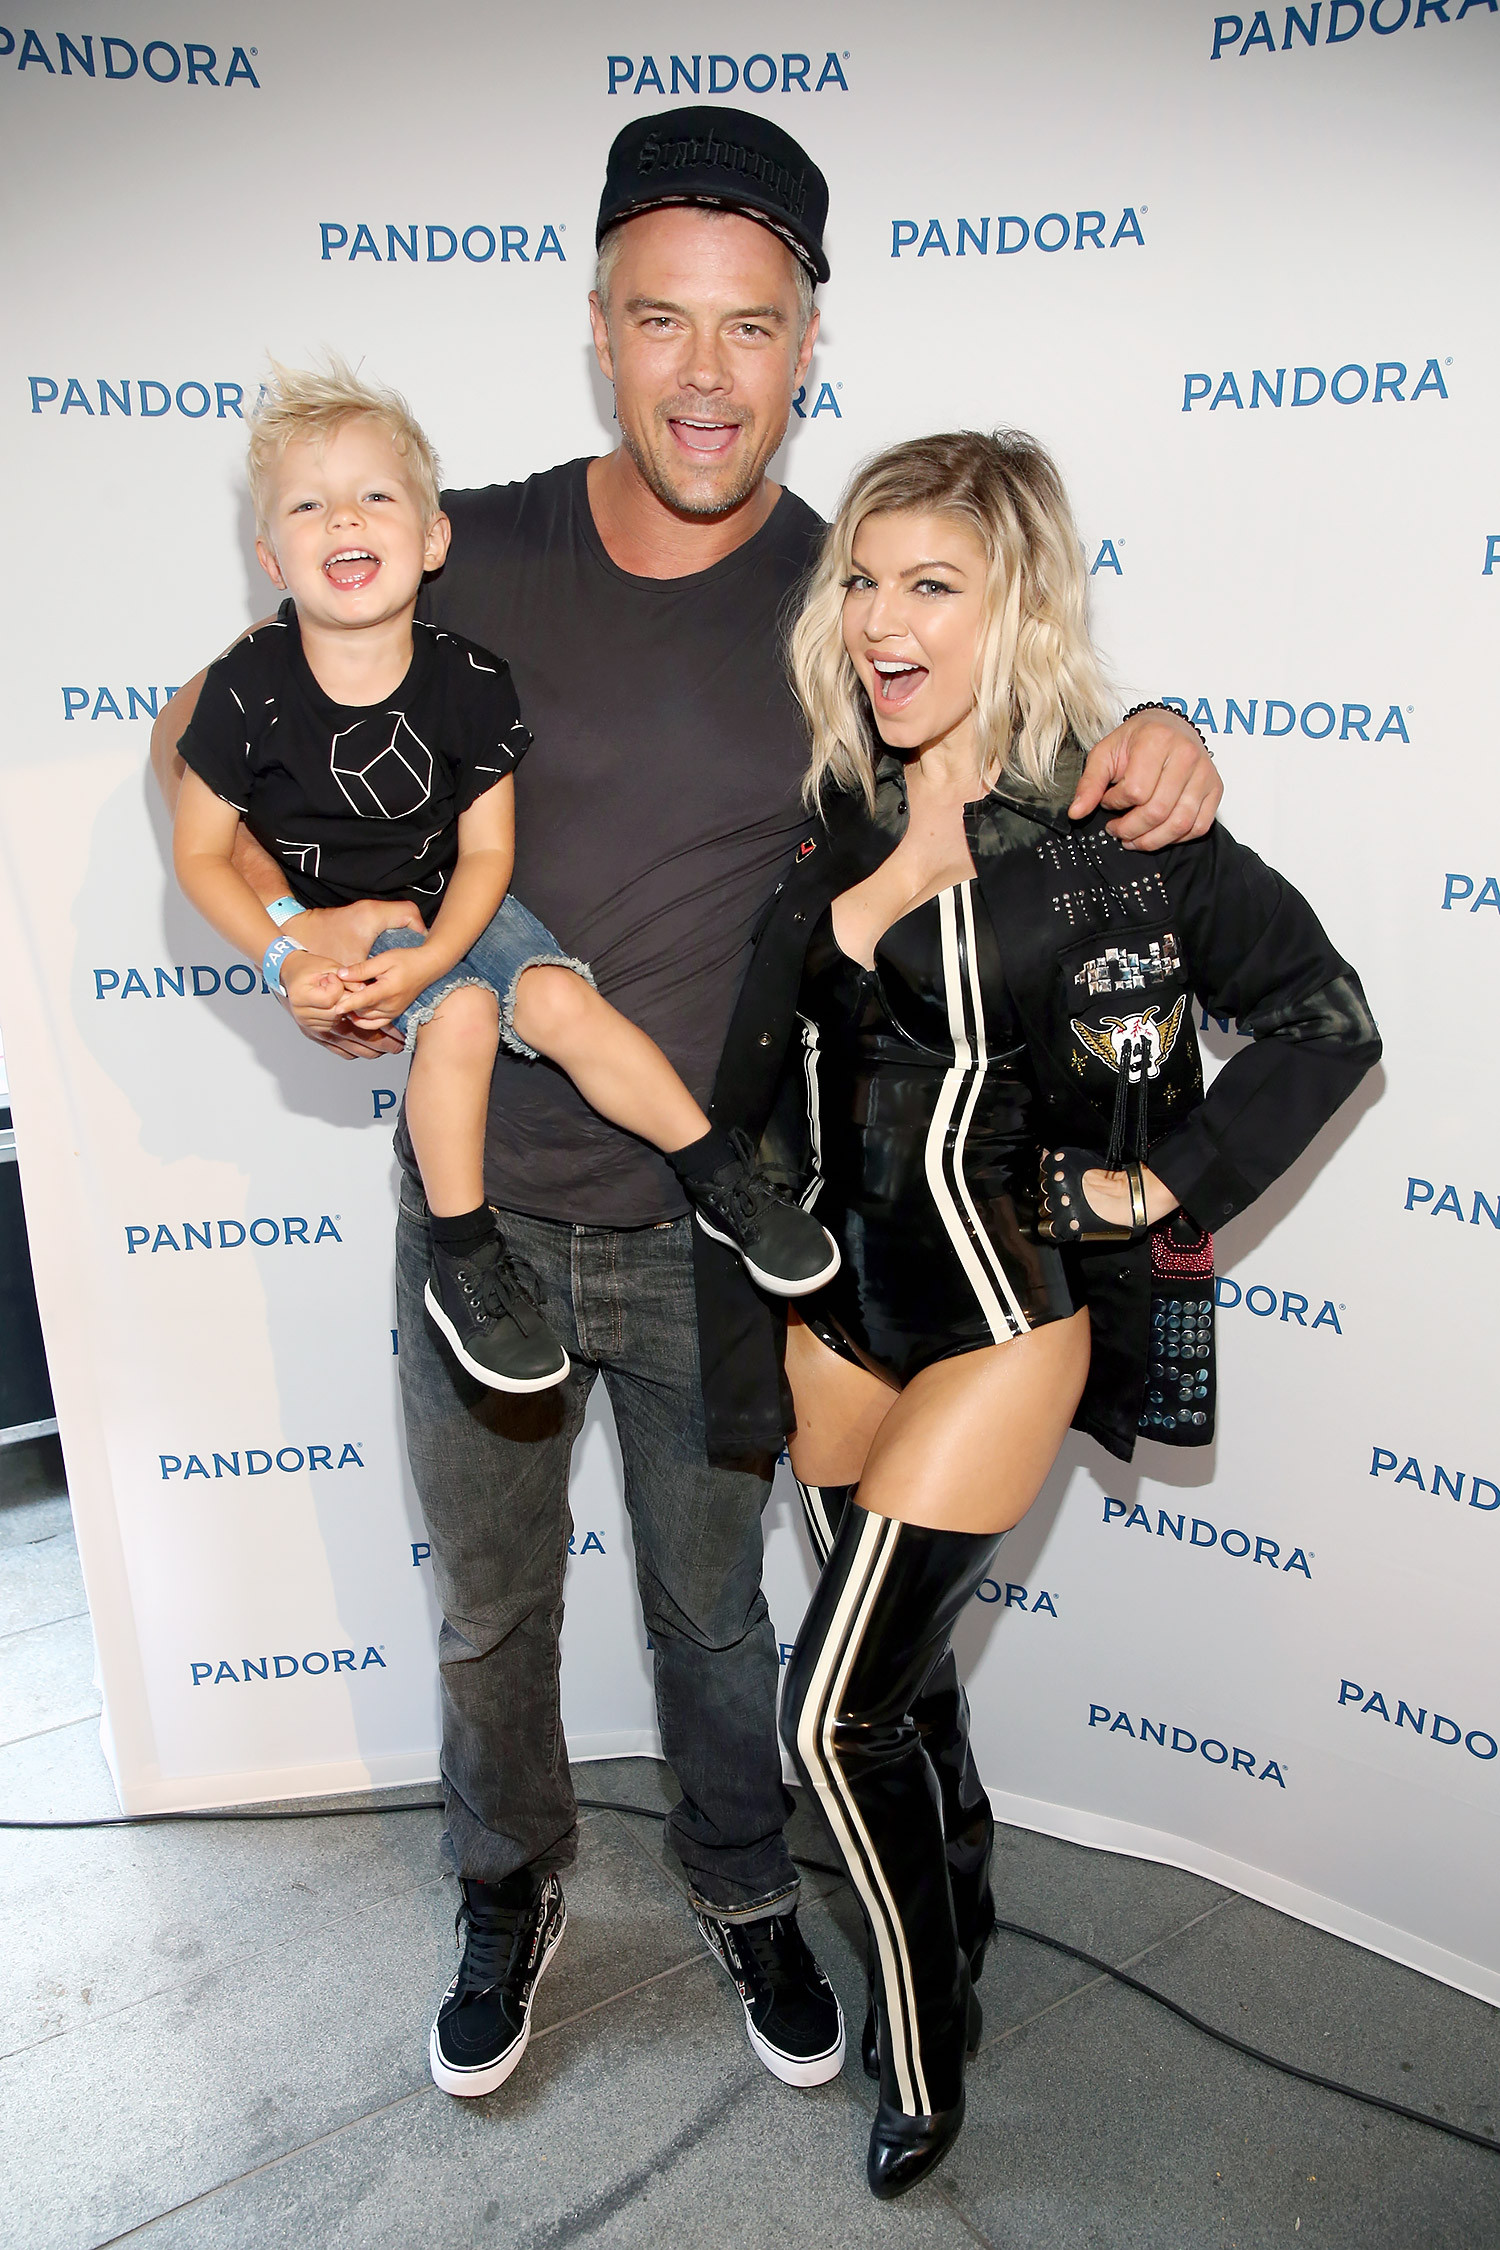 Fergie and Josh Duhamel finalise their divorce 2-years after separating?